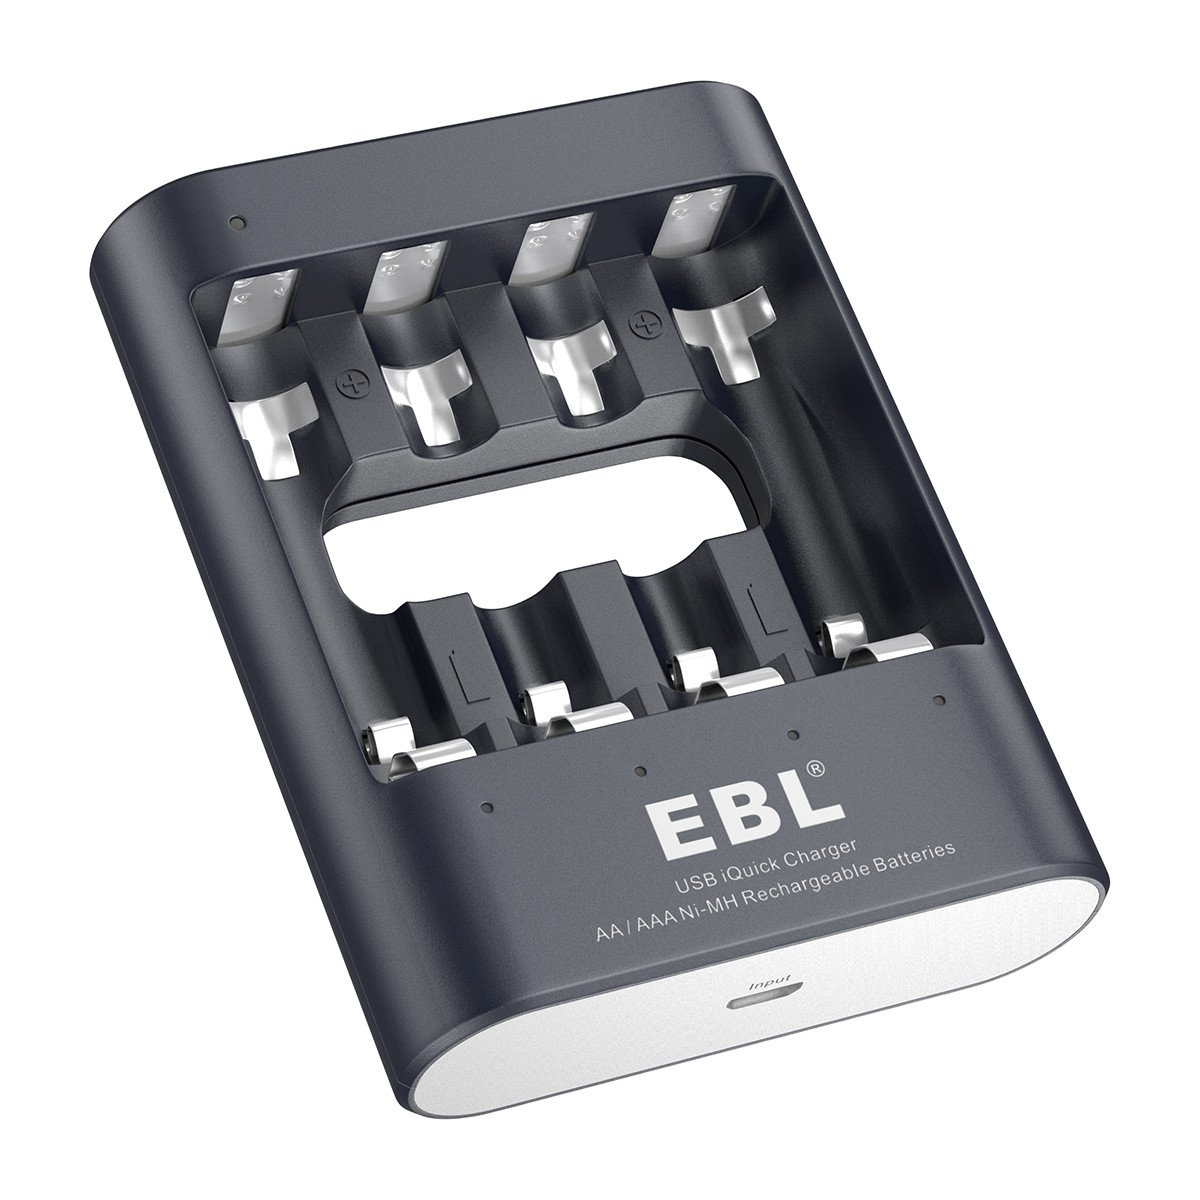 Amazon.com: EBL 40Min iQuick Smart USB Individual Battery Charger for AA AAA  Ni-MH Rechargeable Batteries: Home Audio & Theater